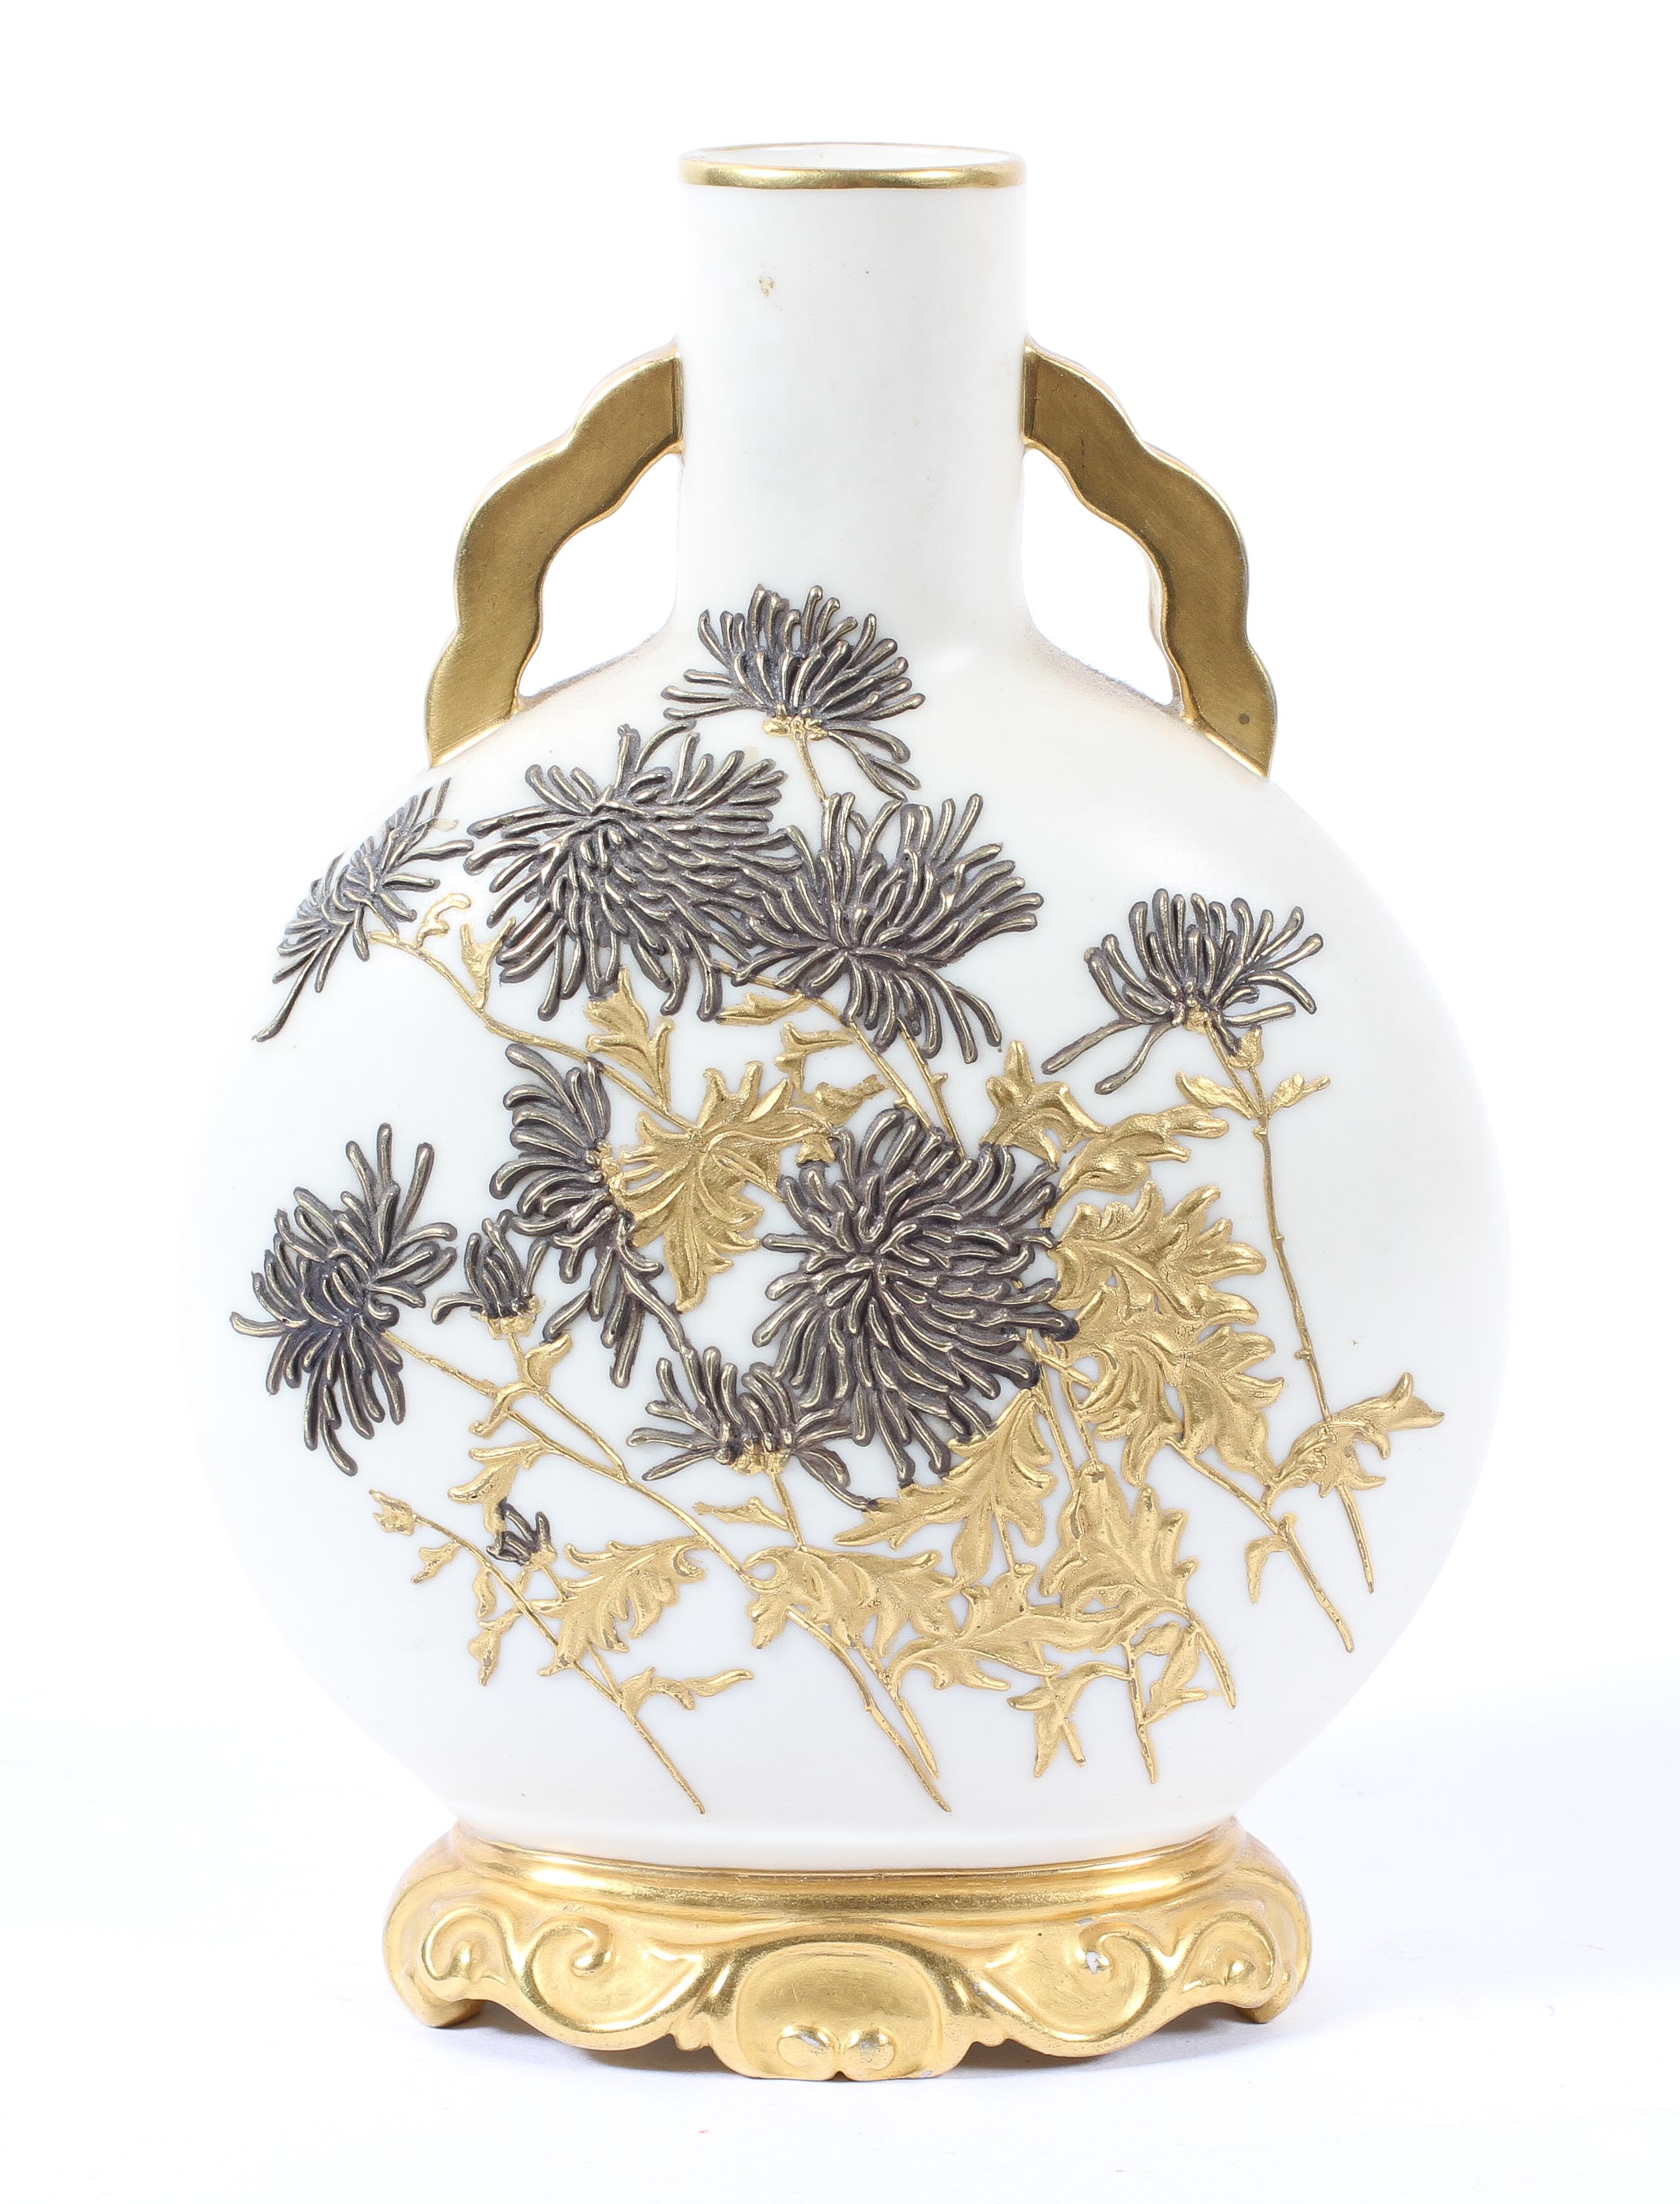 A Royal Worcester Old Ivory Moon Flask, date code Y, with gilt aesthetic style floral decoration,